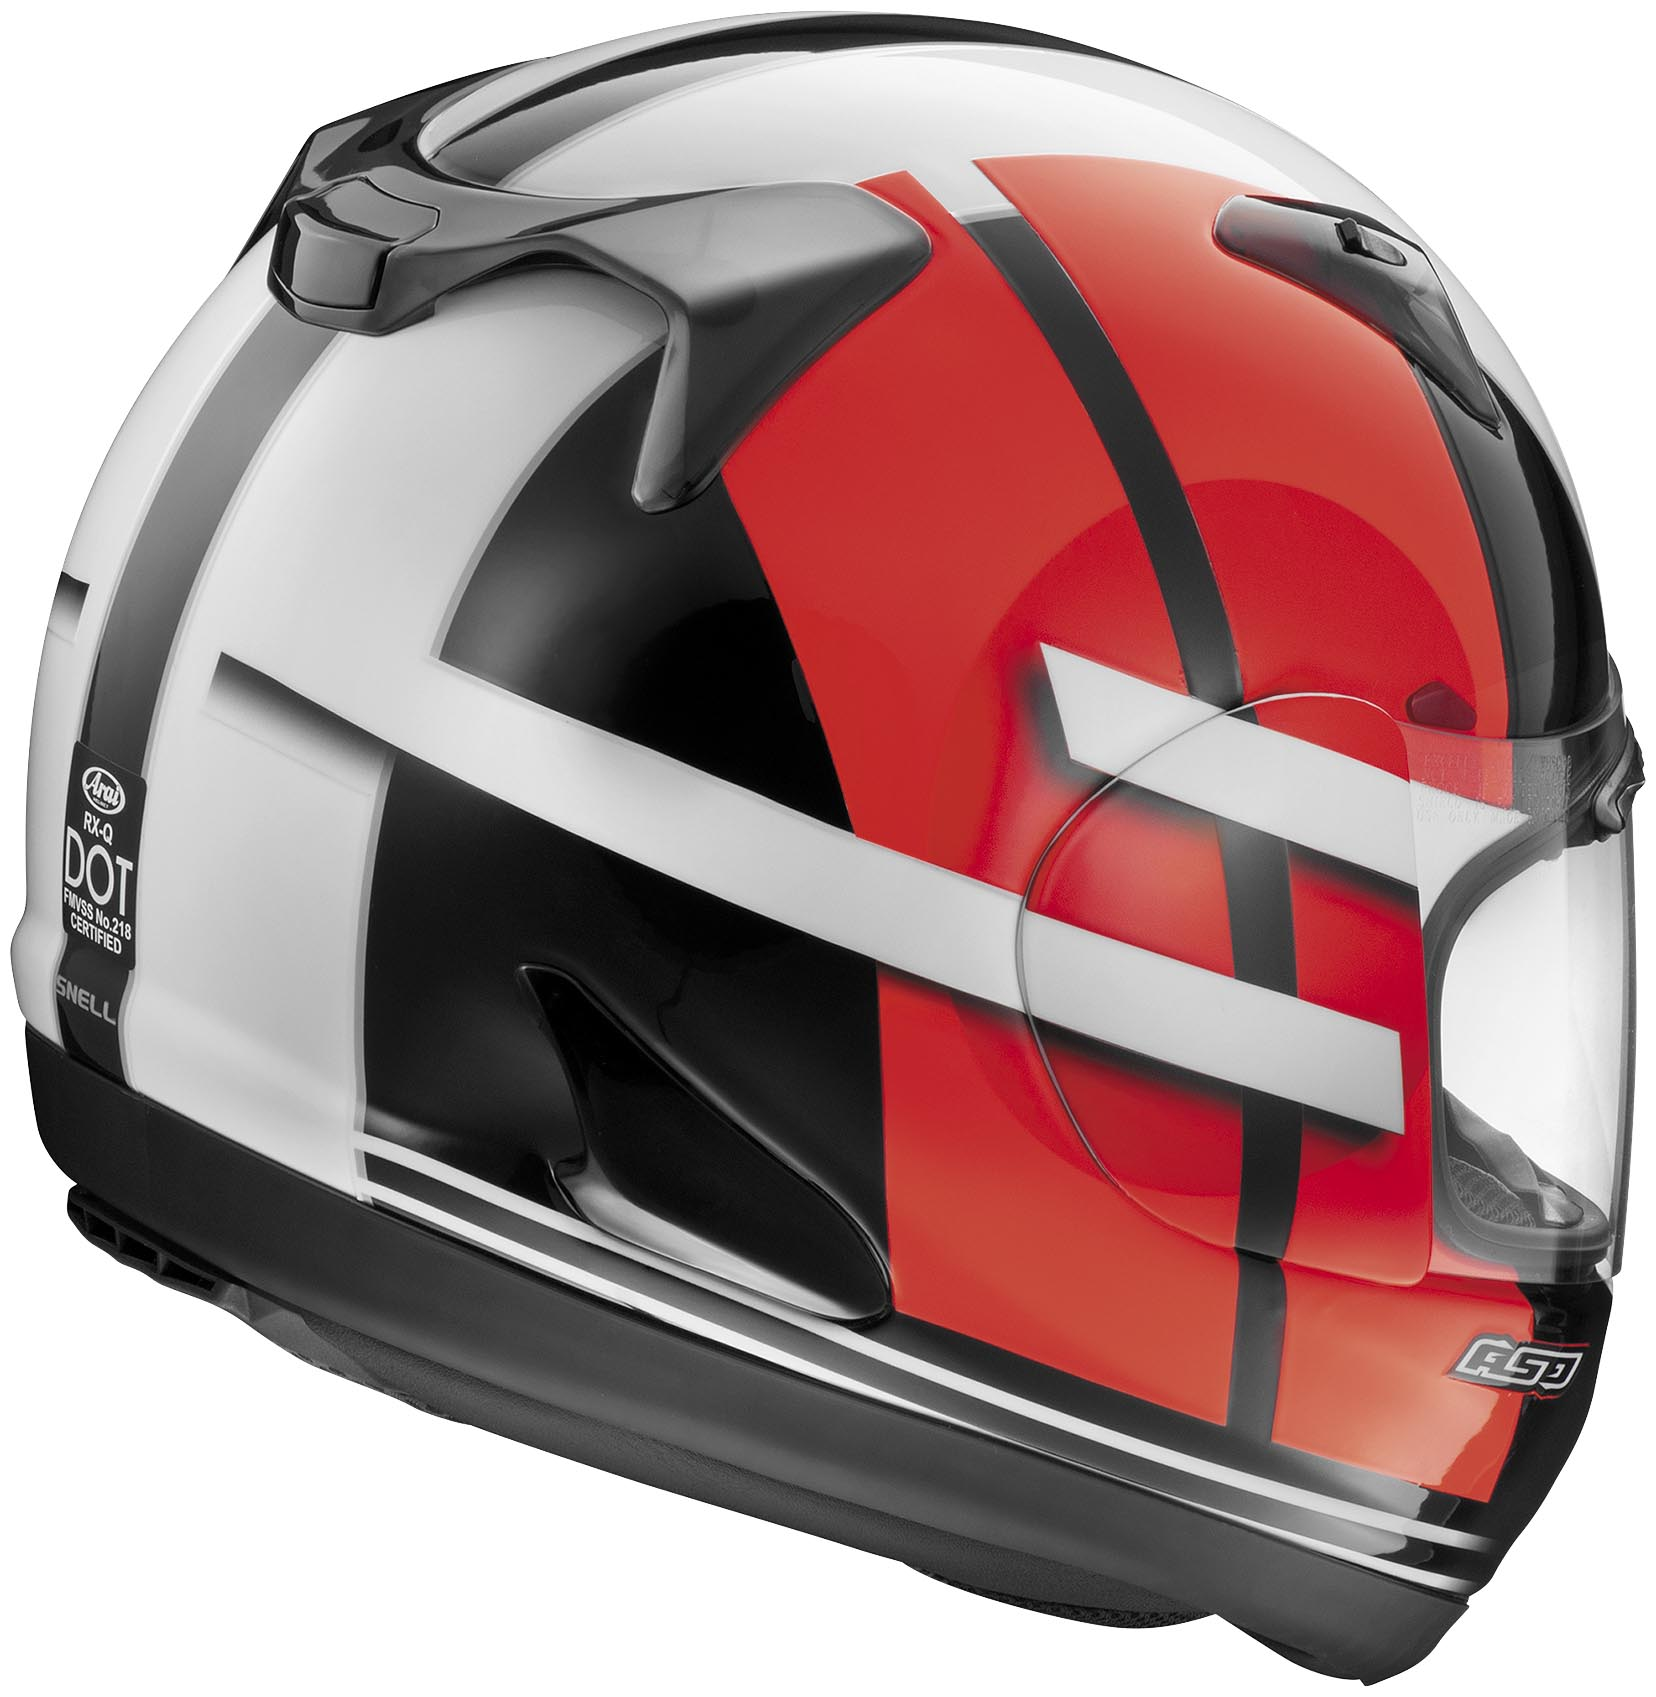 Arai Helmets - Motorcycle & Off Road Styles. Arai Helmets is a world leader in helmet technology, delivering % hand made helmets that are designed to exceed modern safety standards. Each helmet is crafted using the latest in production standards, yet lends three generations of experience in the hand-laid shell to ensure the highest level.